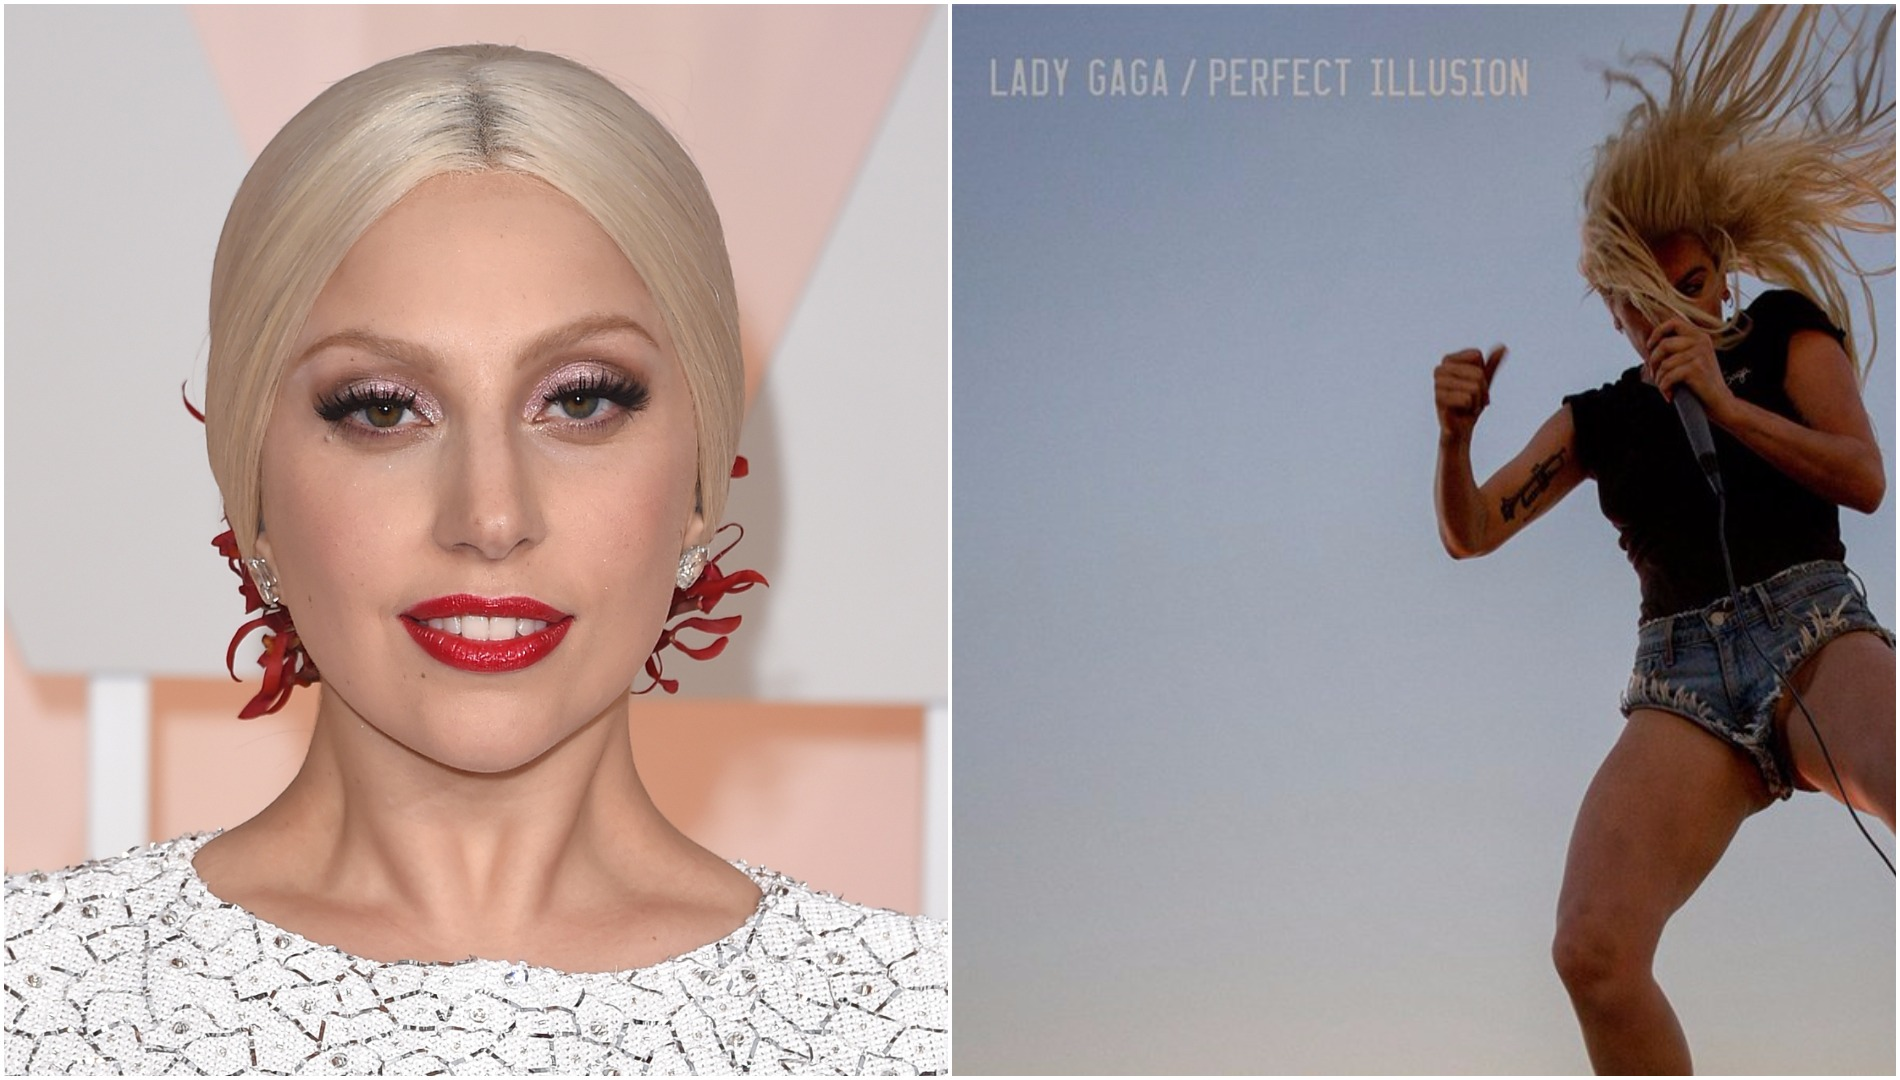 Lady Gaga's comeback single hasn't scratched the Top 10 as Bastille scores their second Number One album